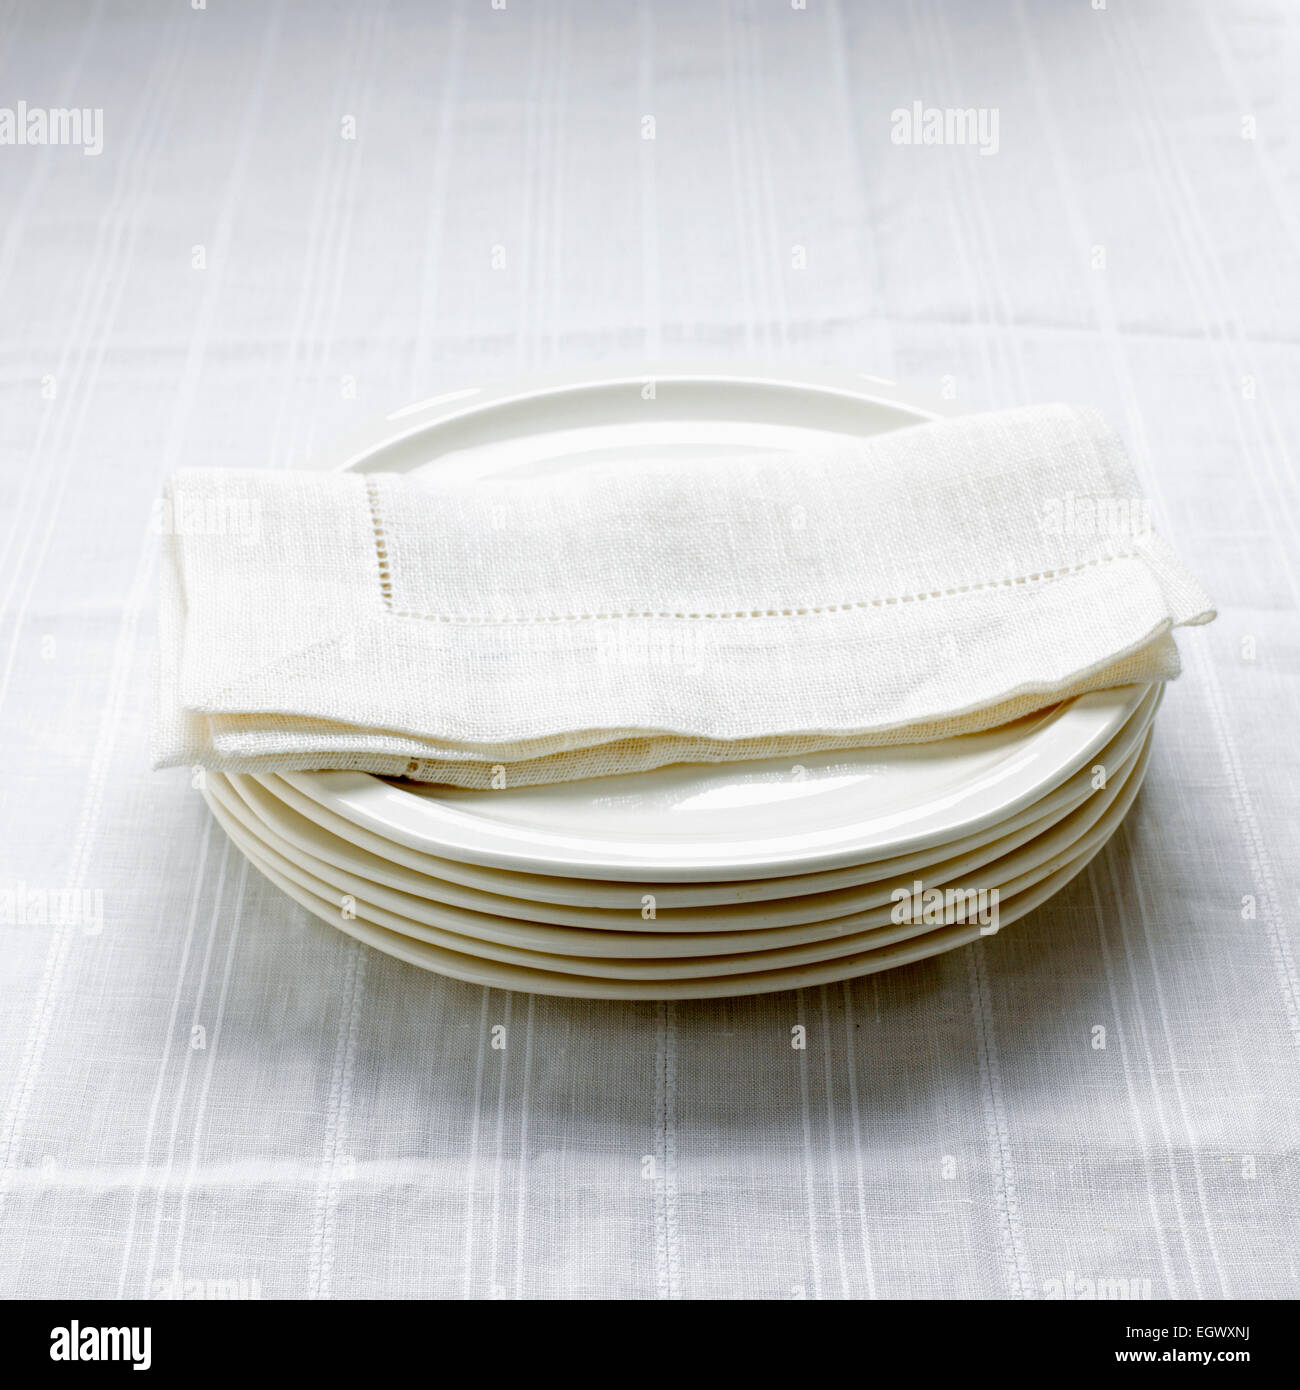 Stack of white plates on a white cloth with a white serviette - Stock Image